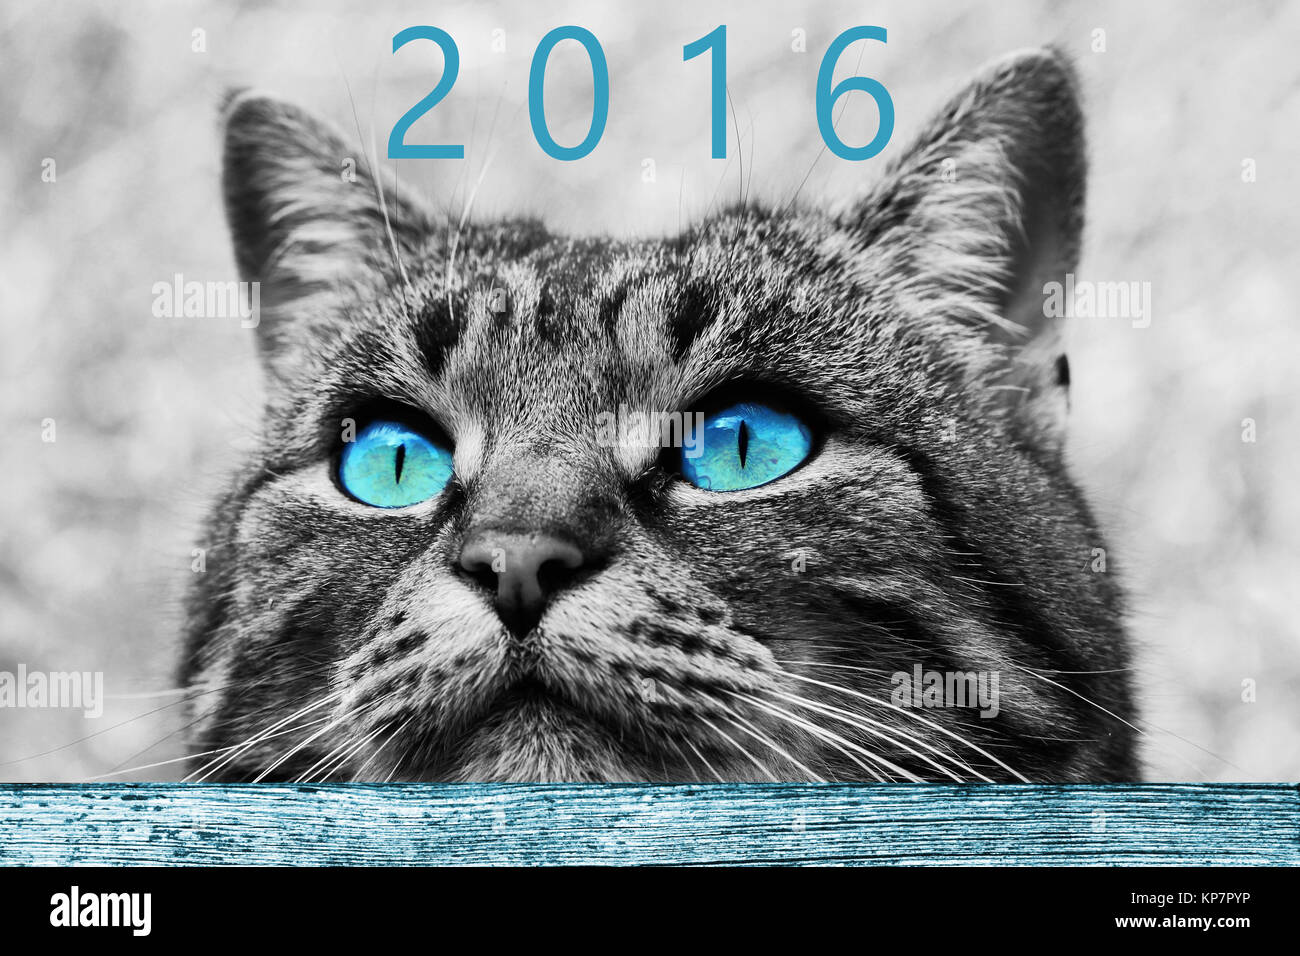 a curious cat look at the new year 2016 Stock Photo